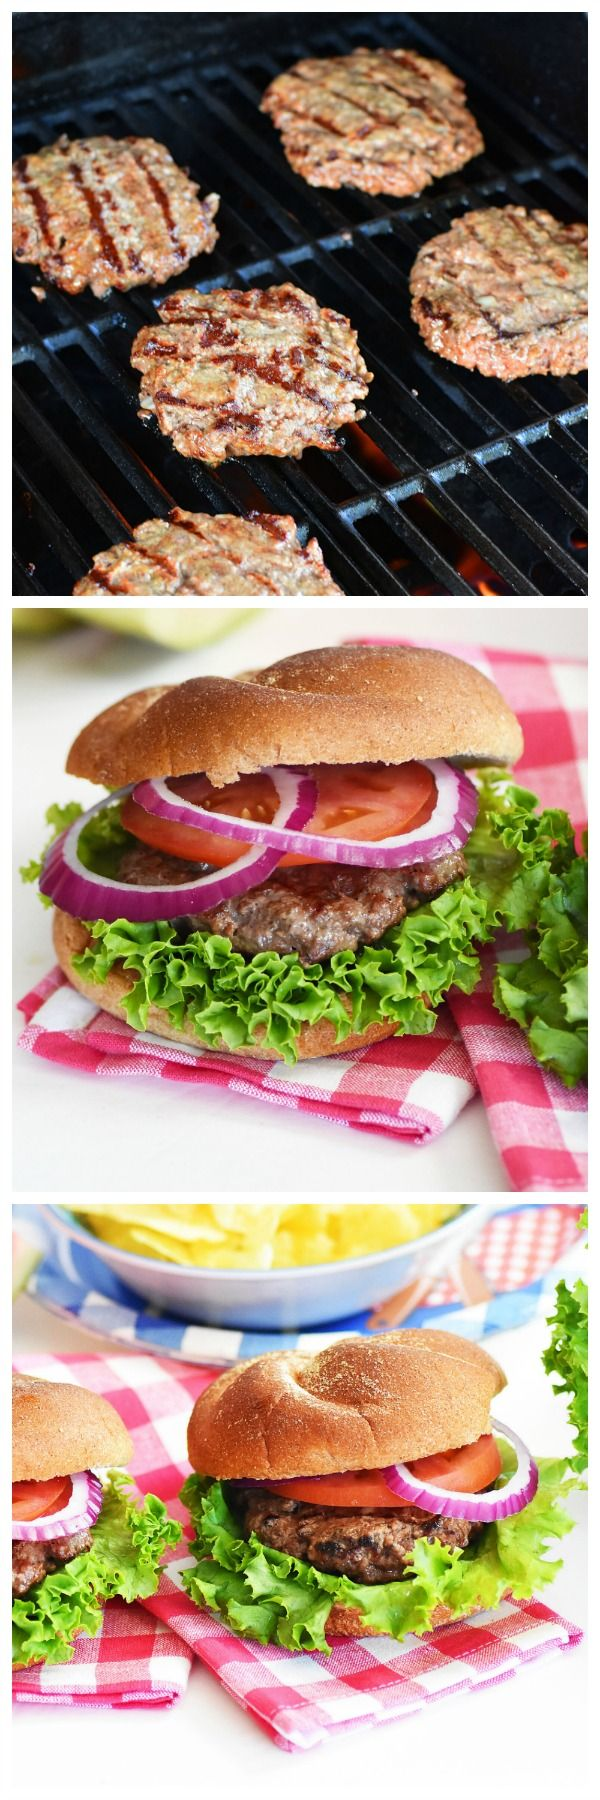 Hearty Backyard Burgers are so delicious and feature beer, onion, garlic, and Worcestershire sauce. Come check out the recipe today! #ad #BurgerTour